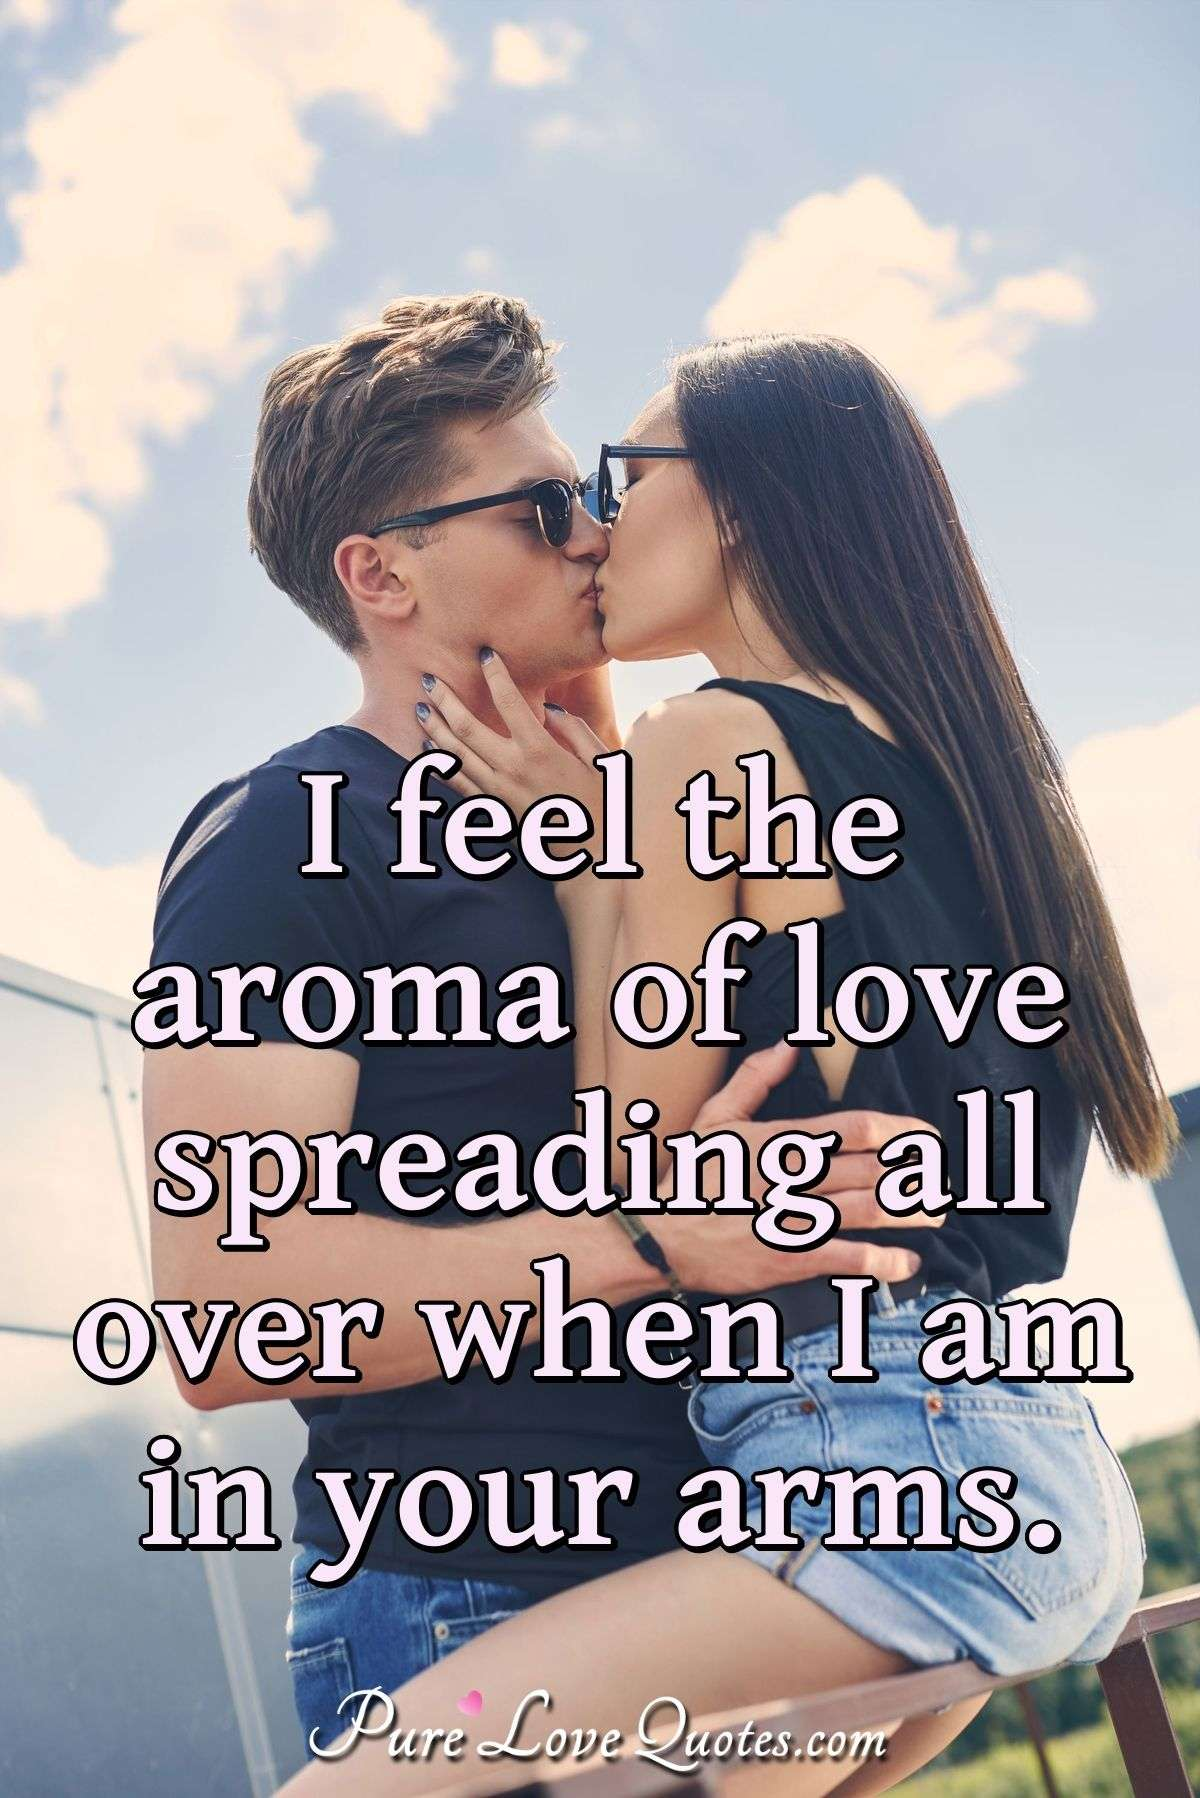 I feel the aroma of love spreading all over when I am in your arms. - Anonymous